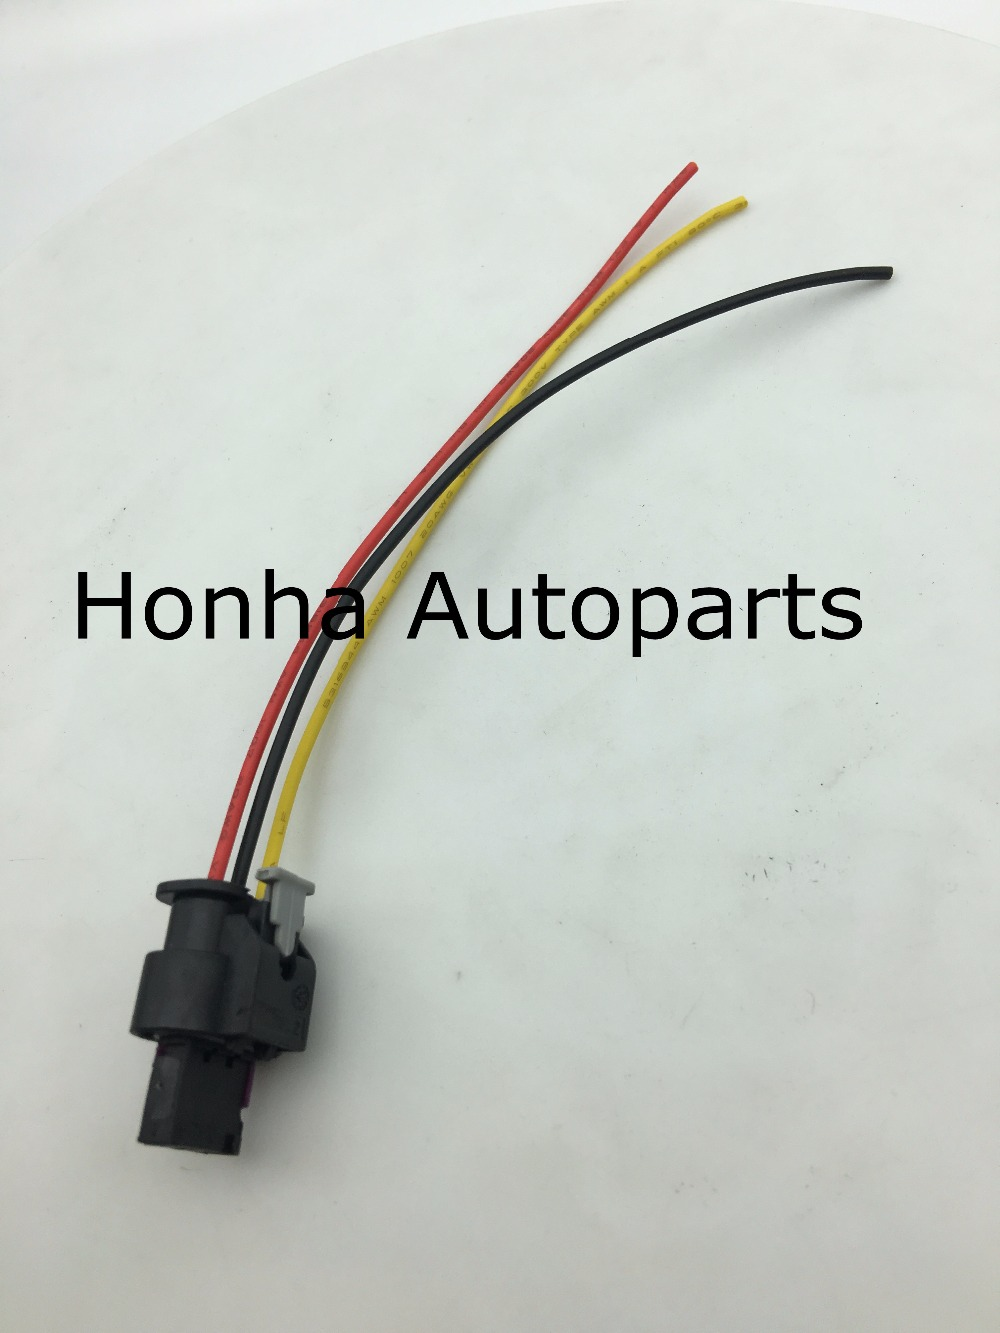 Flat Housing Connector Plug 3 pin Wiring Harness For VW Jetta Touareg 2007  2012 For Audi A3 Q7 2008 2010 3C0973203 4F0973703-in Cables, Adapters &  Sockets ...